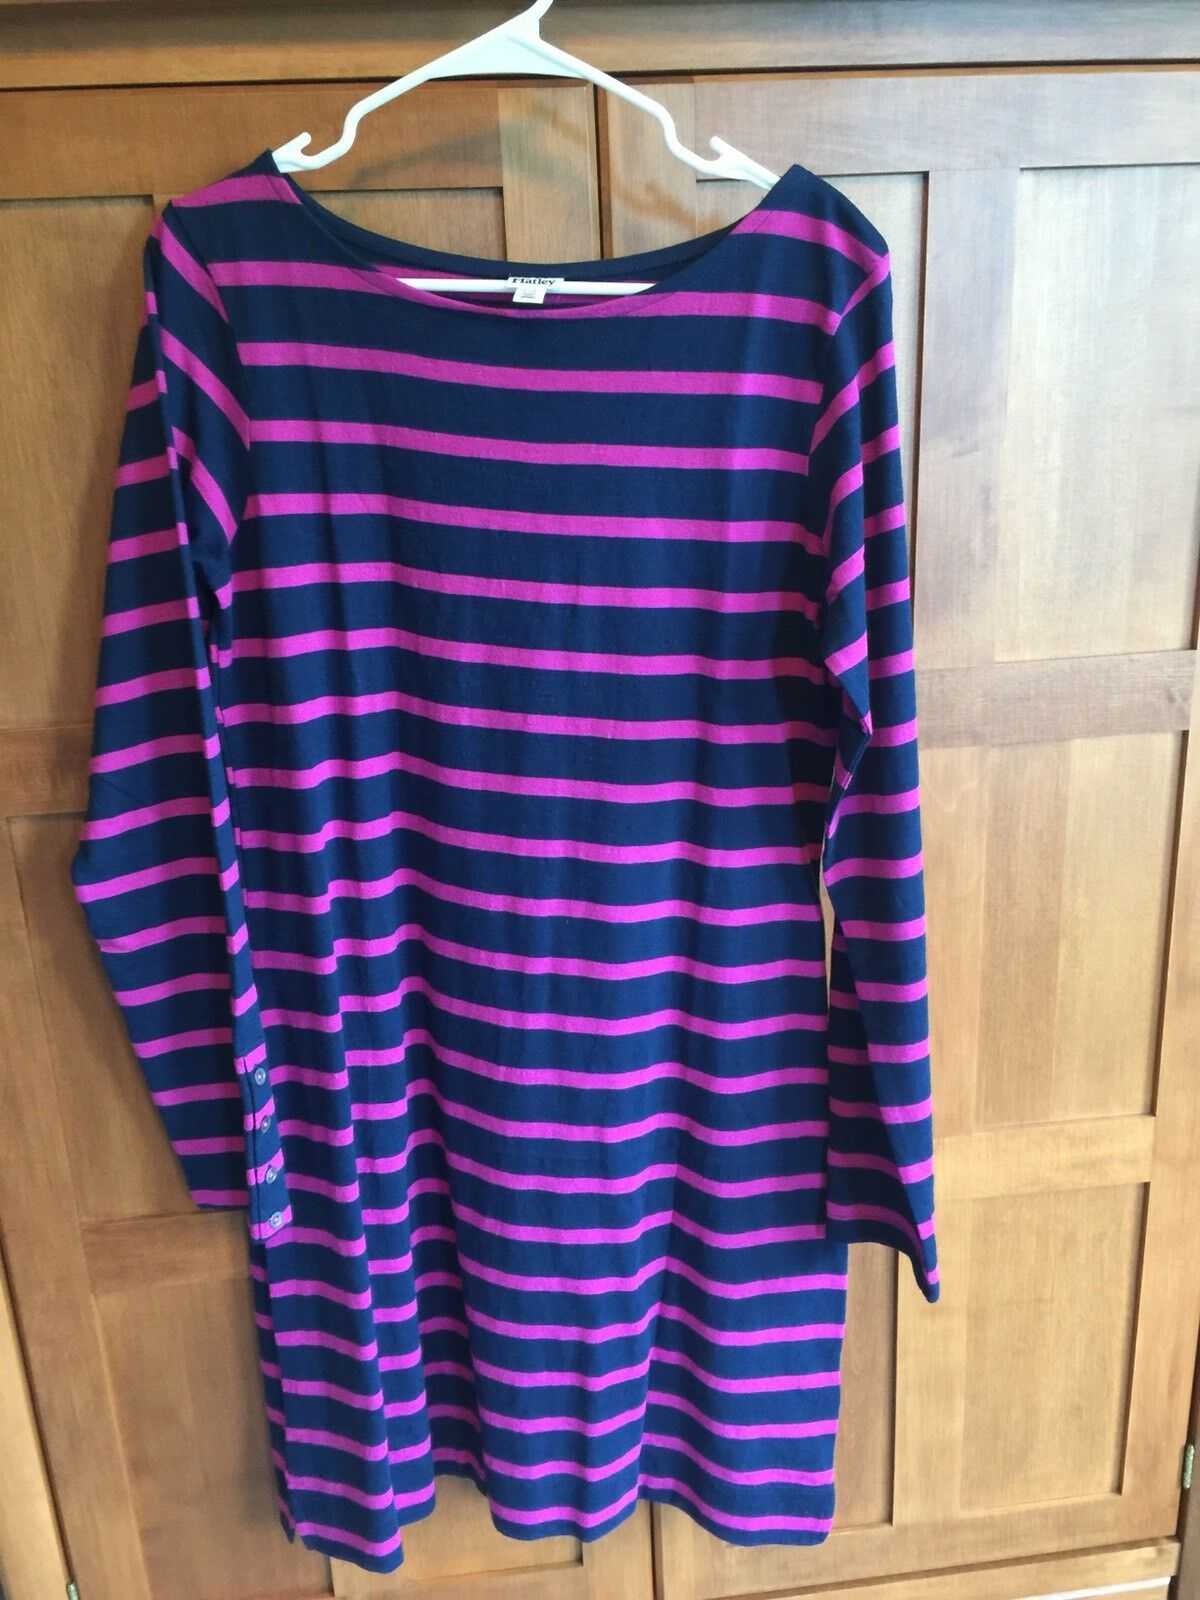 Hatley Hatley Hatley Summer Dress Size L b40e85